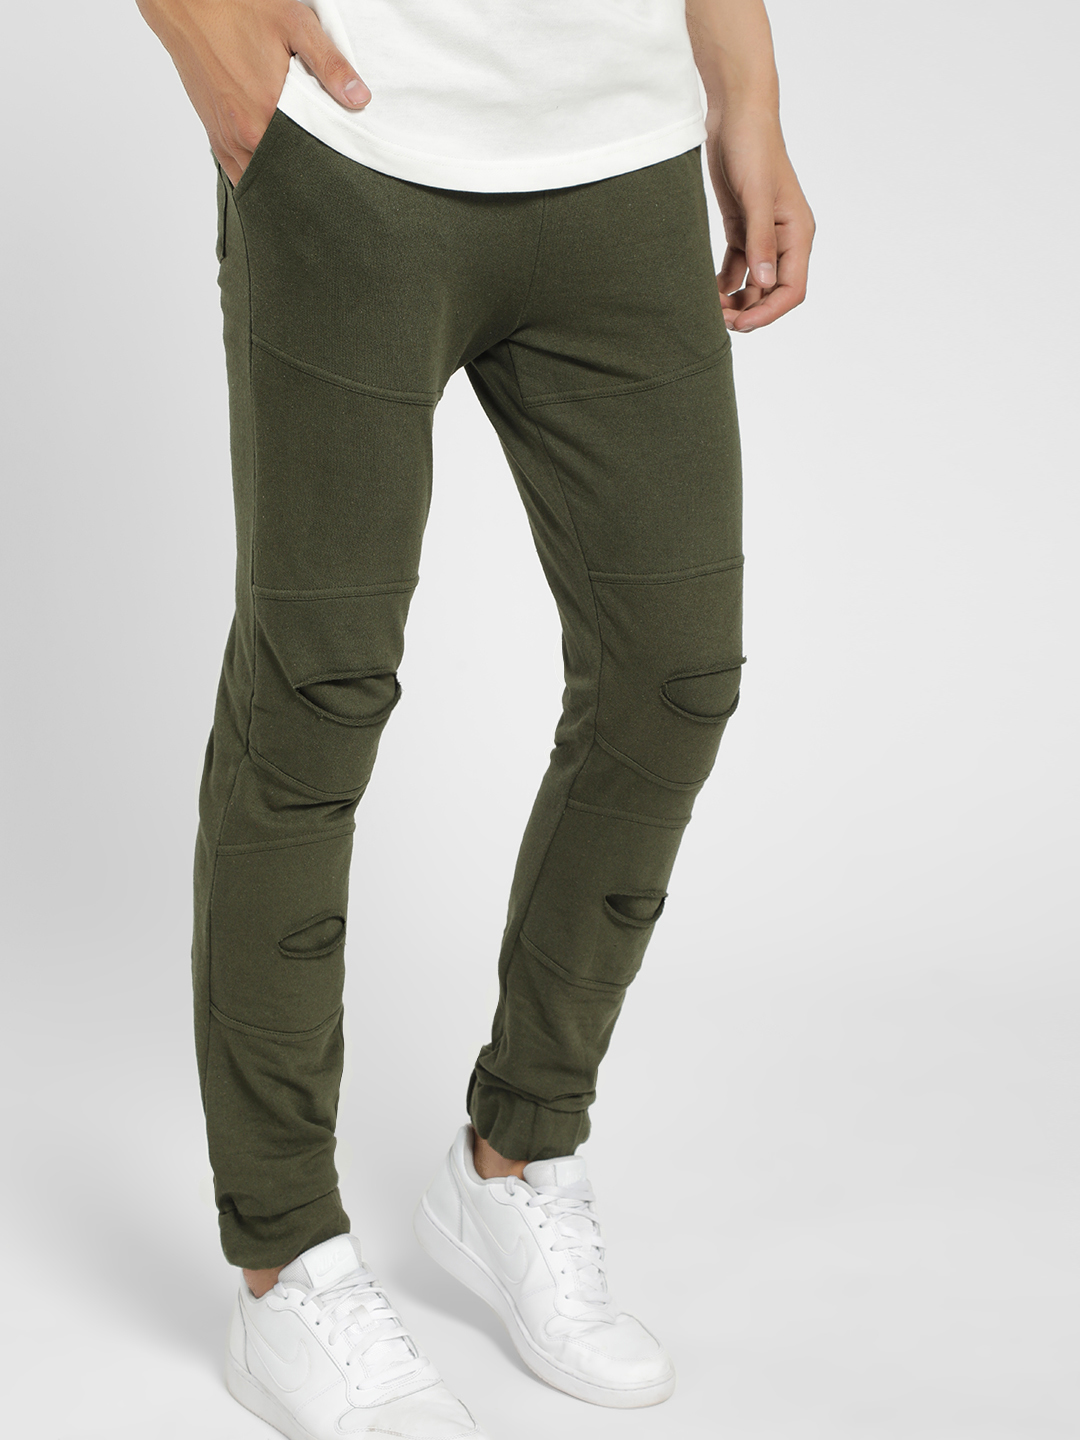 Styx & Stones Green Distressed Panelled Joggers 1